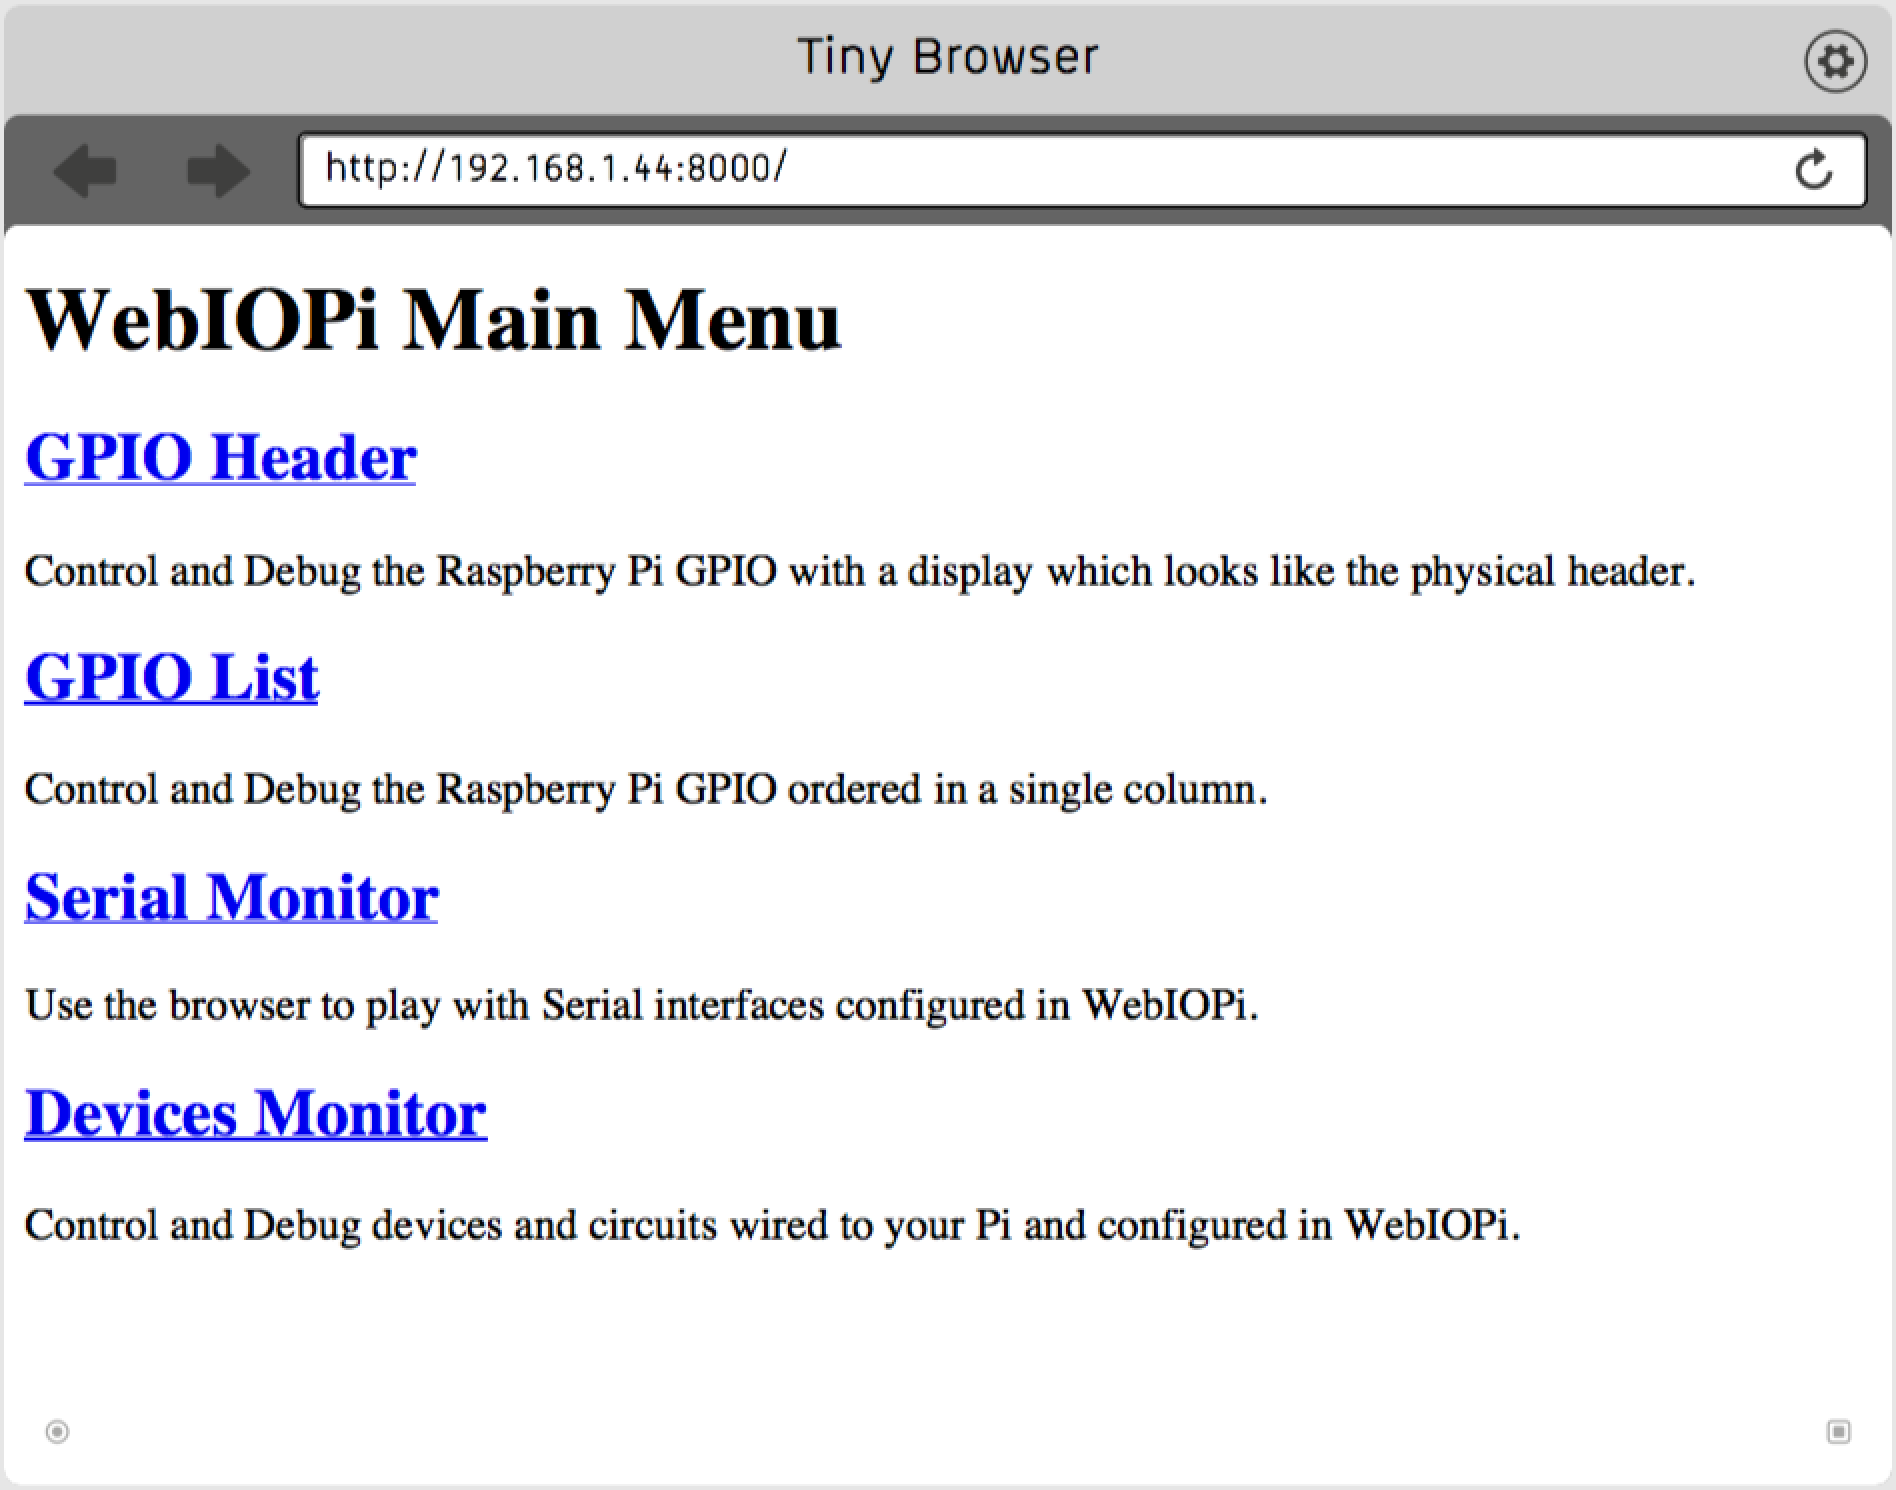 WebIOPi firstStart in Tiny Browser